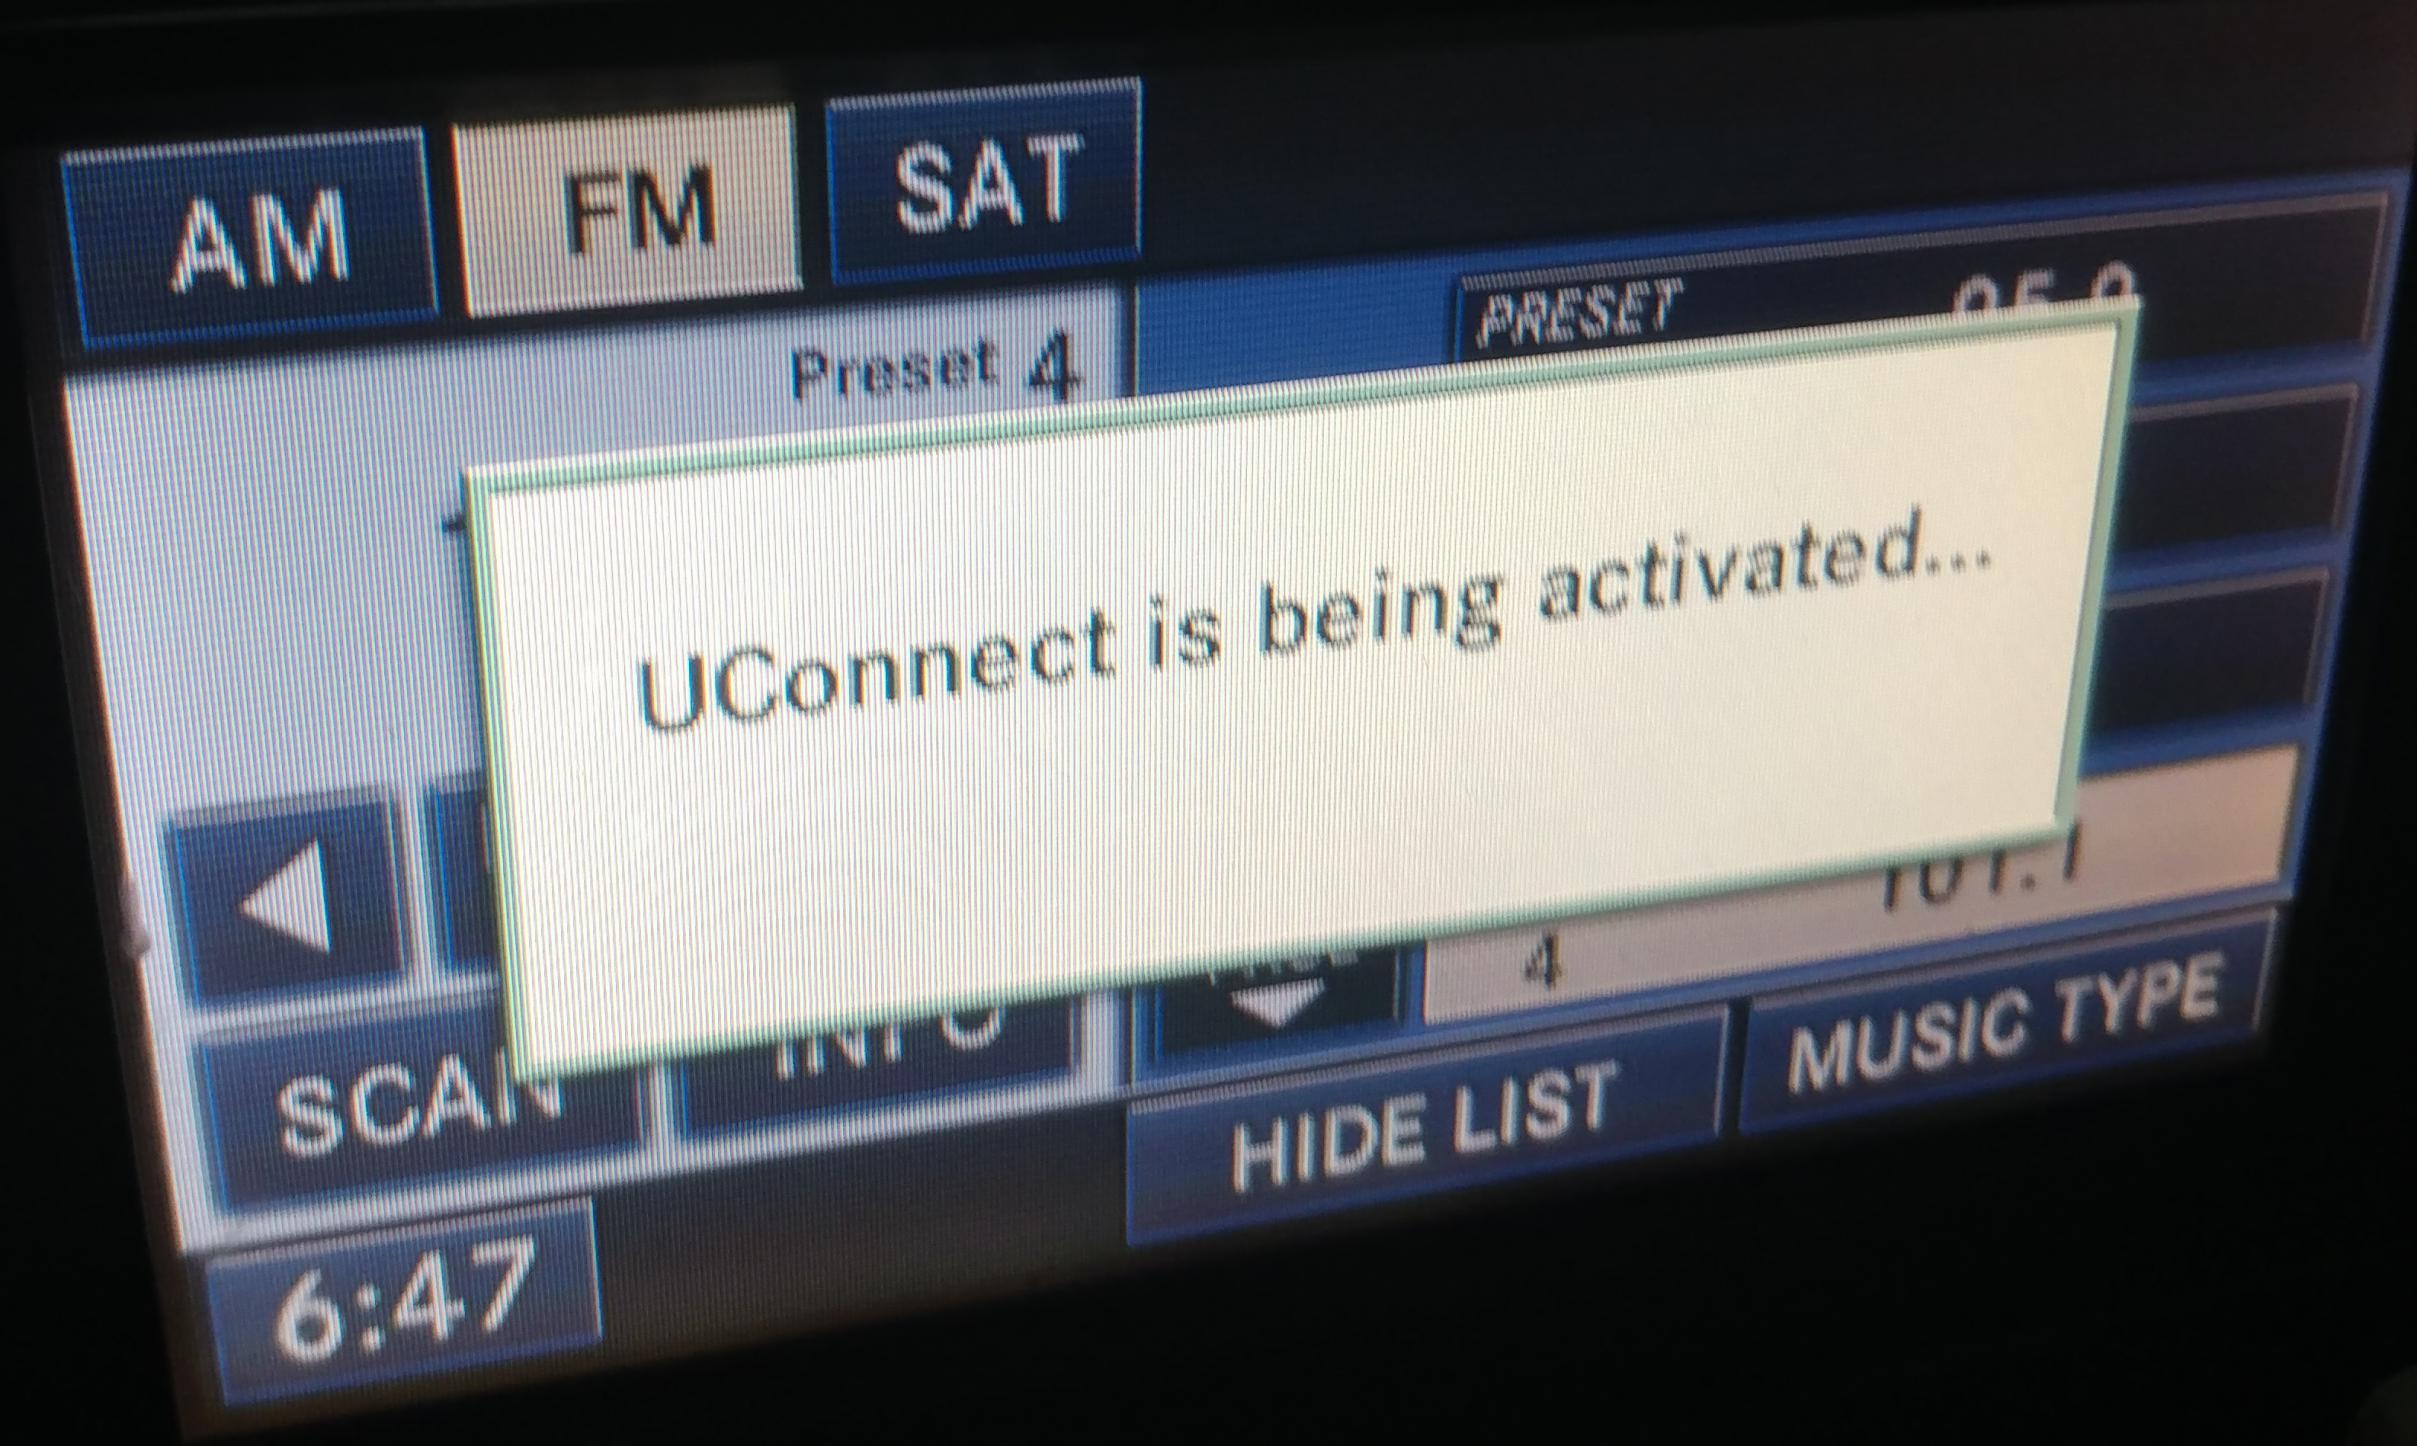 help with 2008 Charger RER radio problem after updating to 9 713